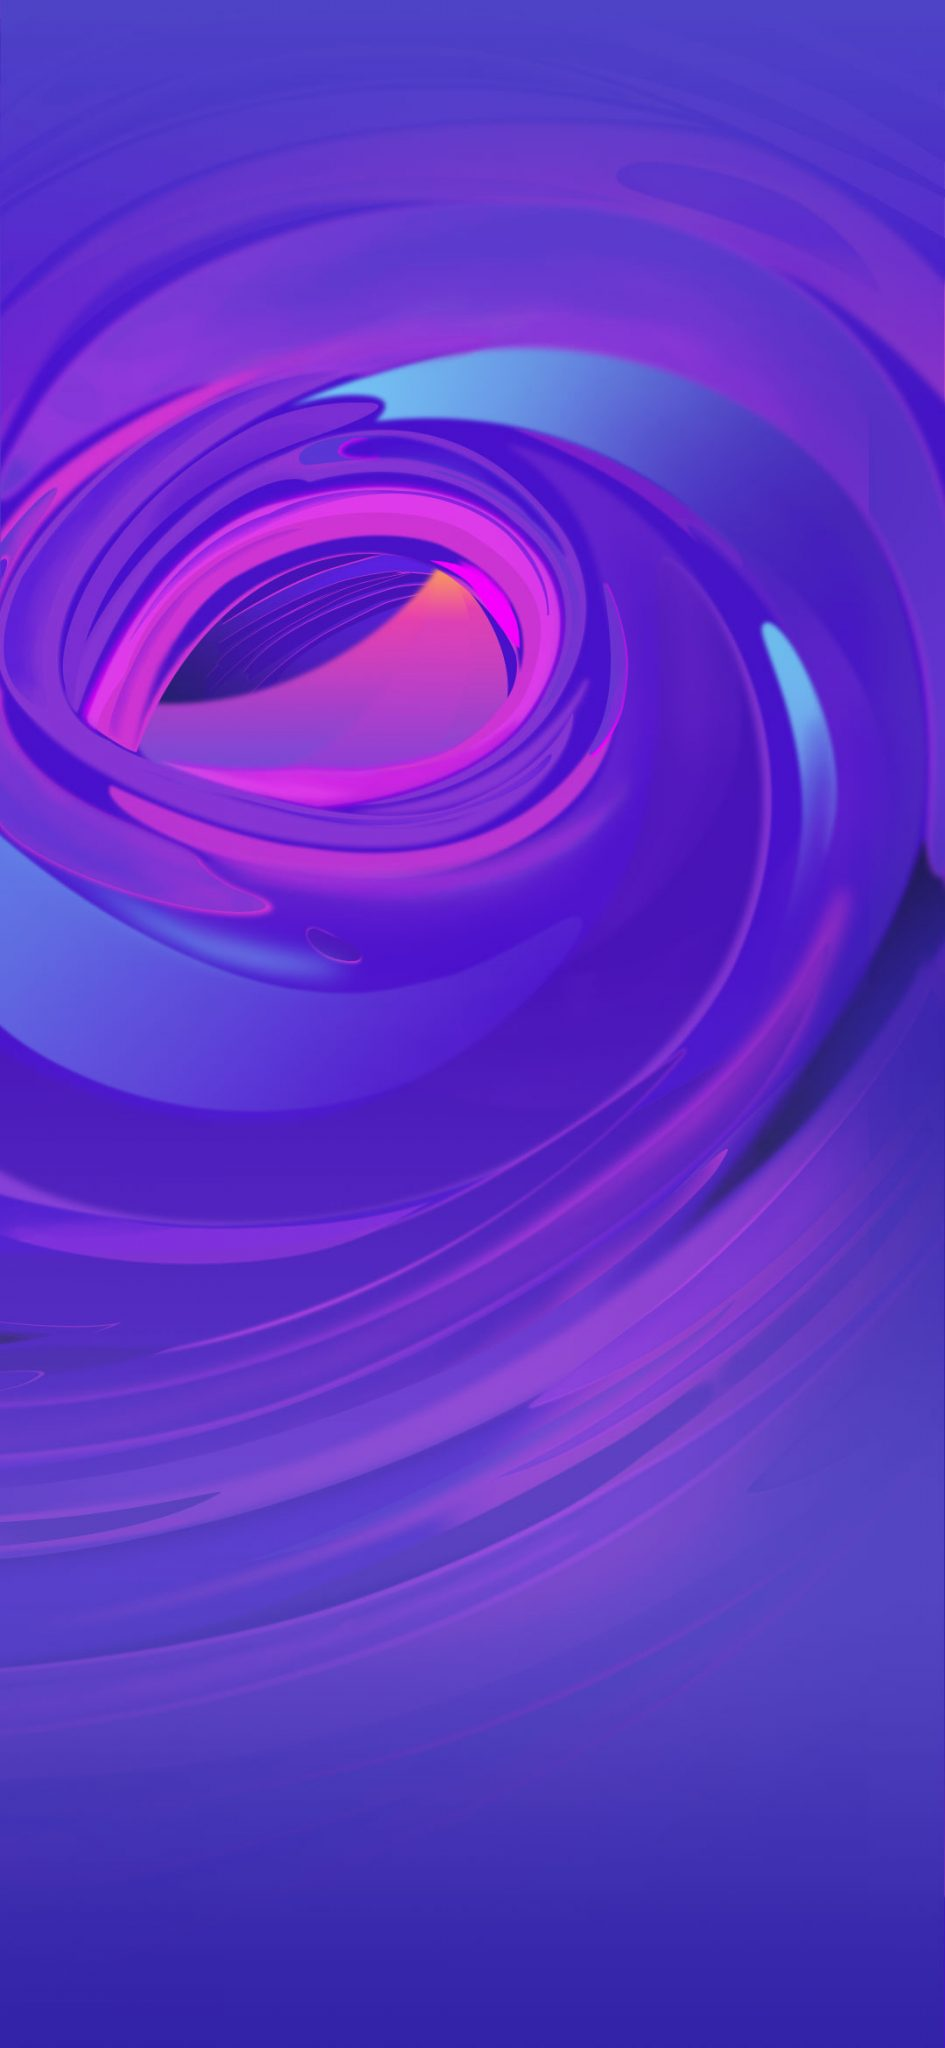 Download Xiaomi Mi Mix 3 Stock Wallpapers - ZIP File Included 1